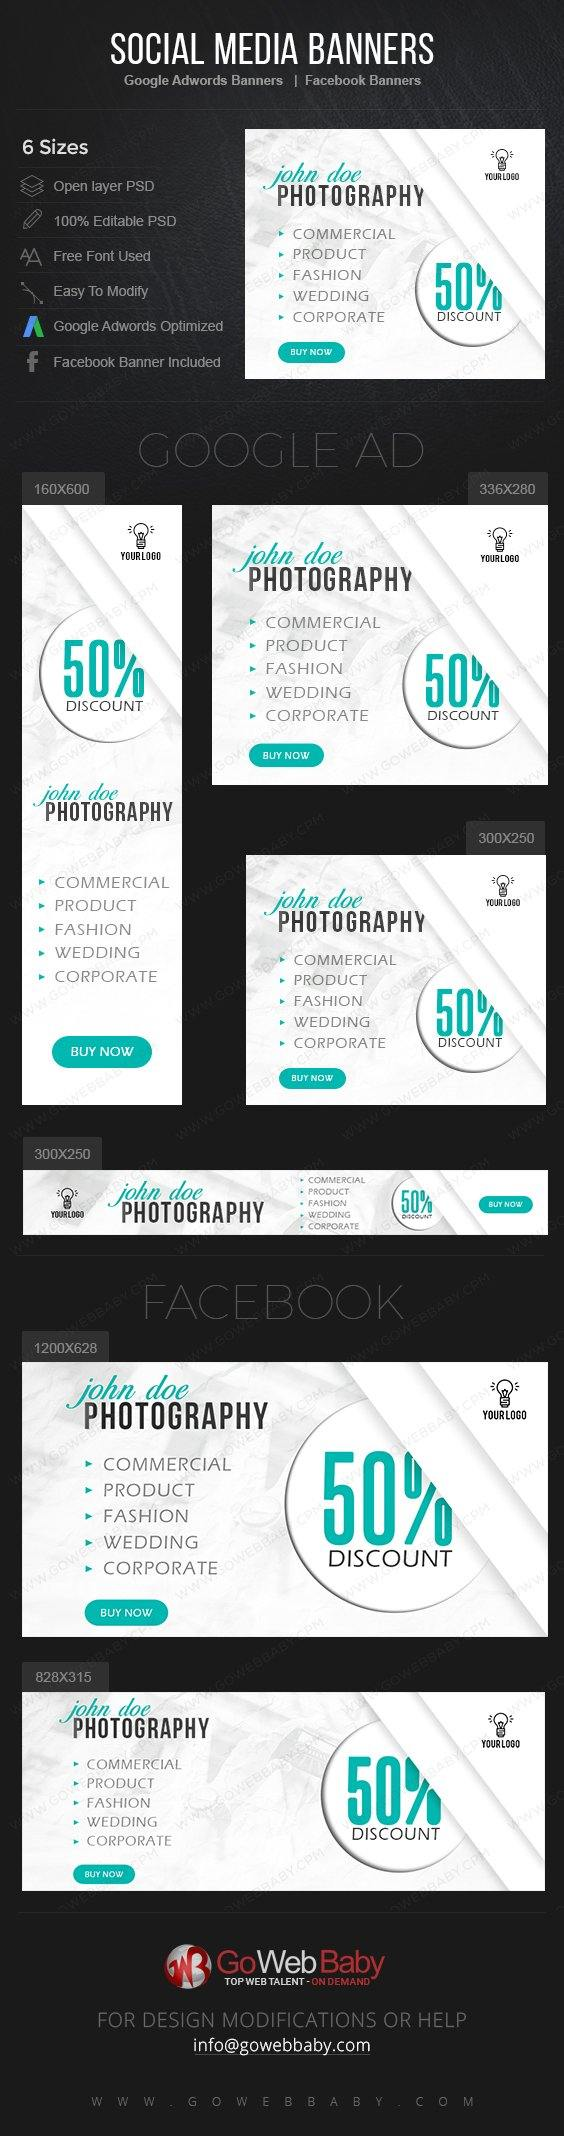 Google Adwords Display Banner with Facebook Banners - Creative Photography For Website Marketing - GoWebBaby.Com